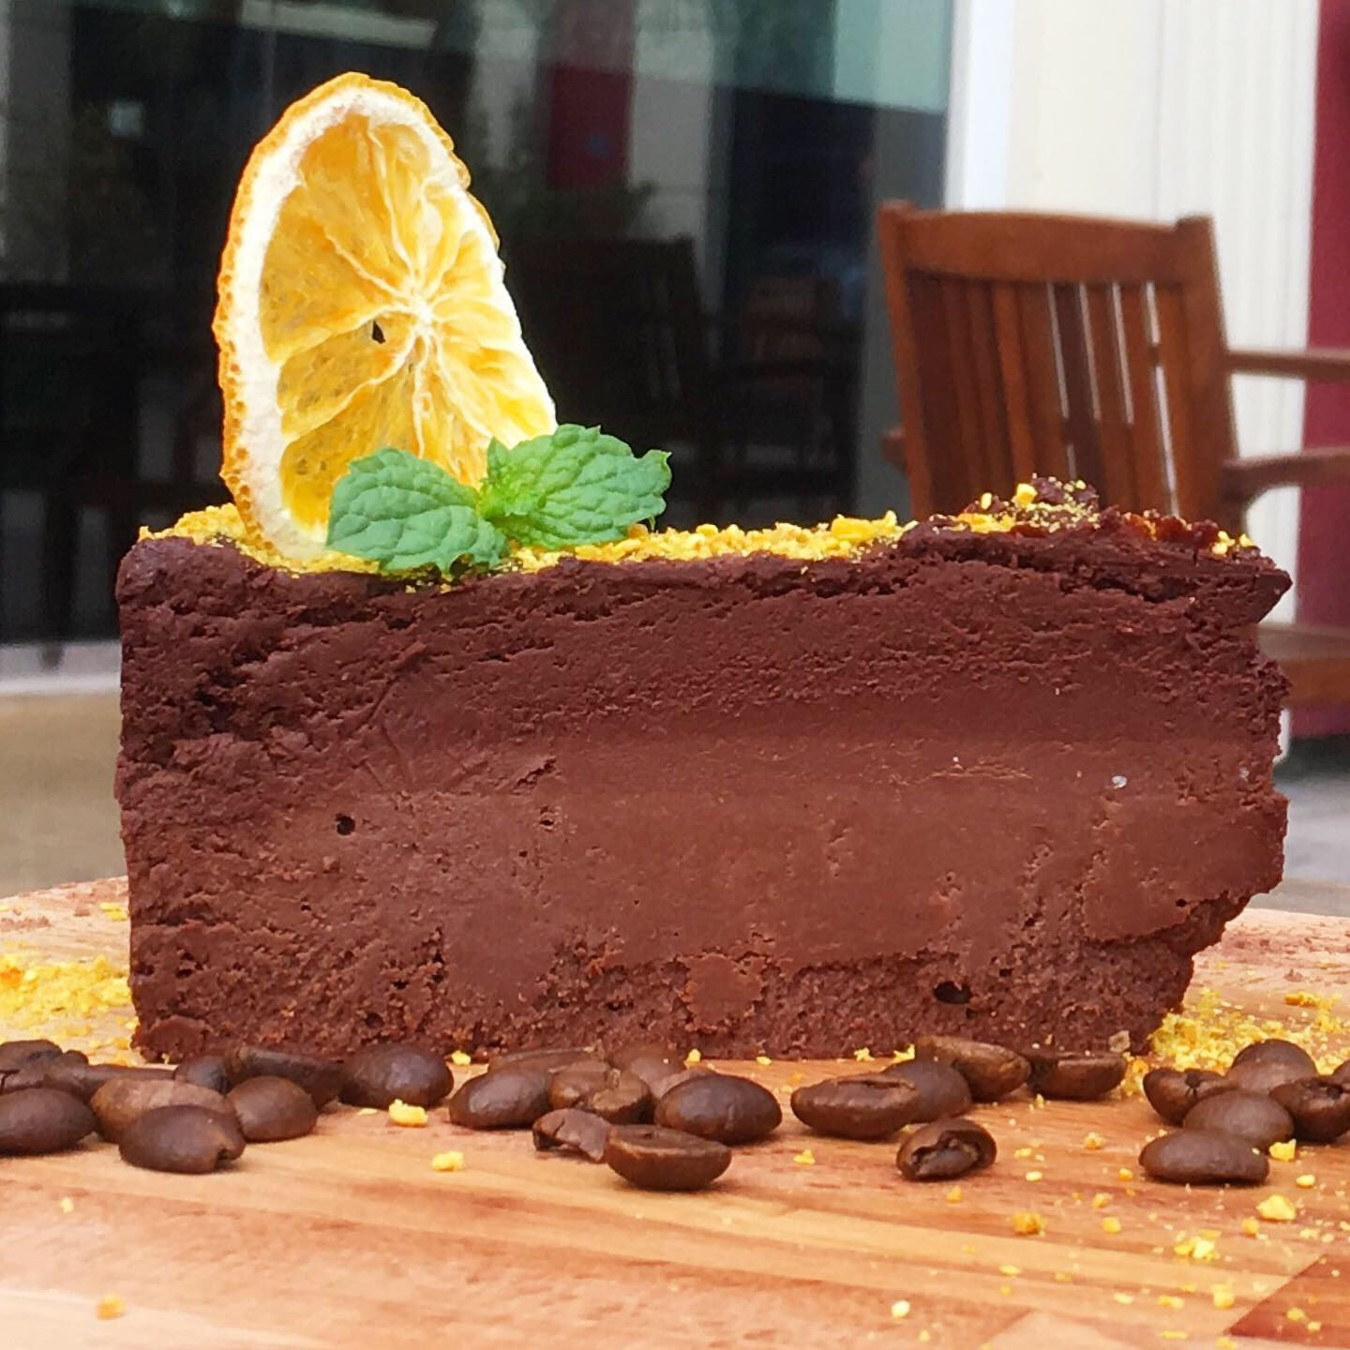 Keto chocolate cake (3.4g net carbs per slice)